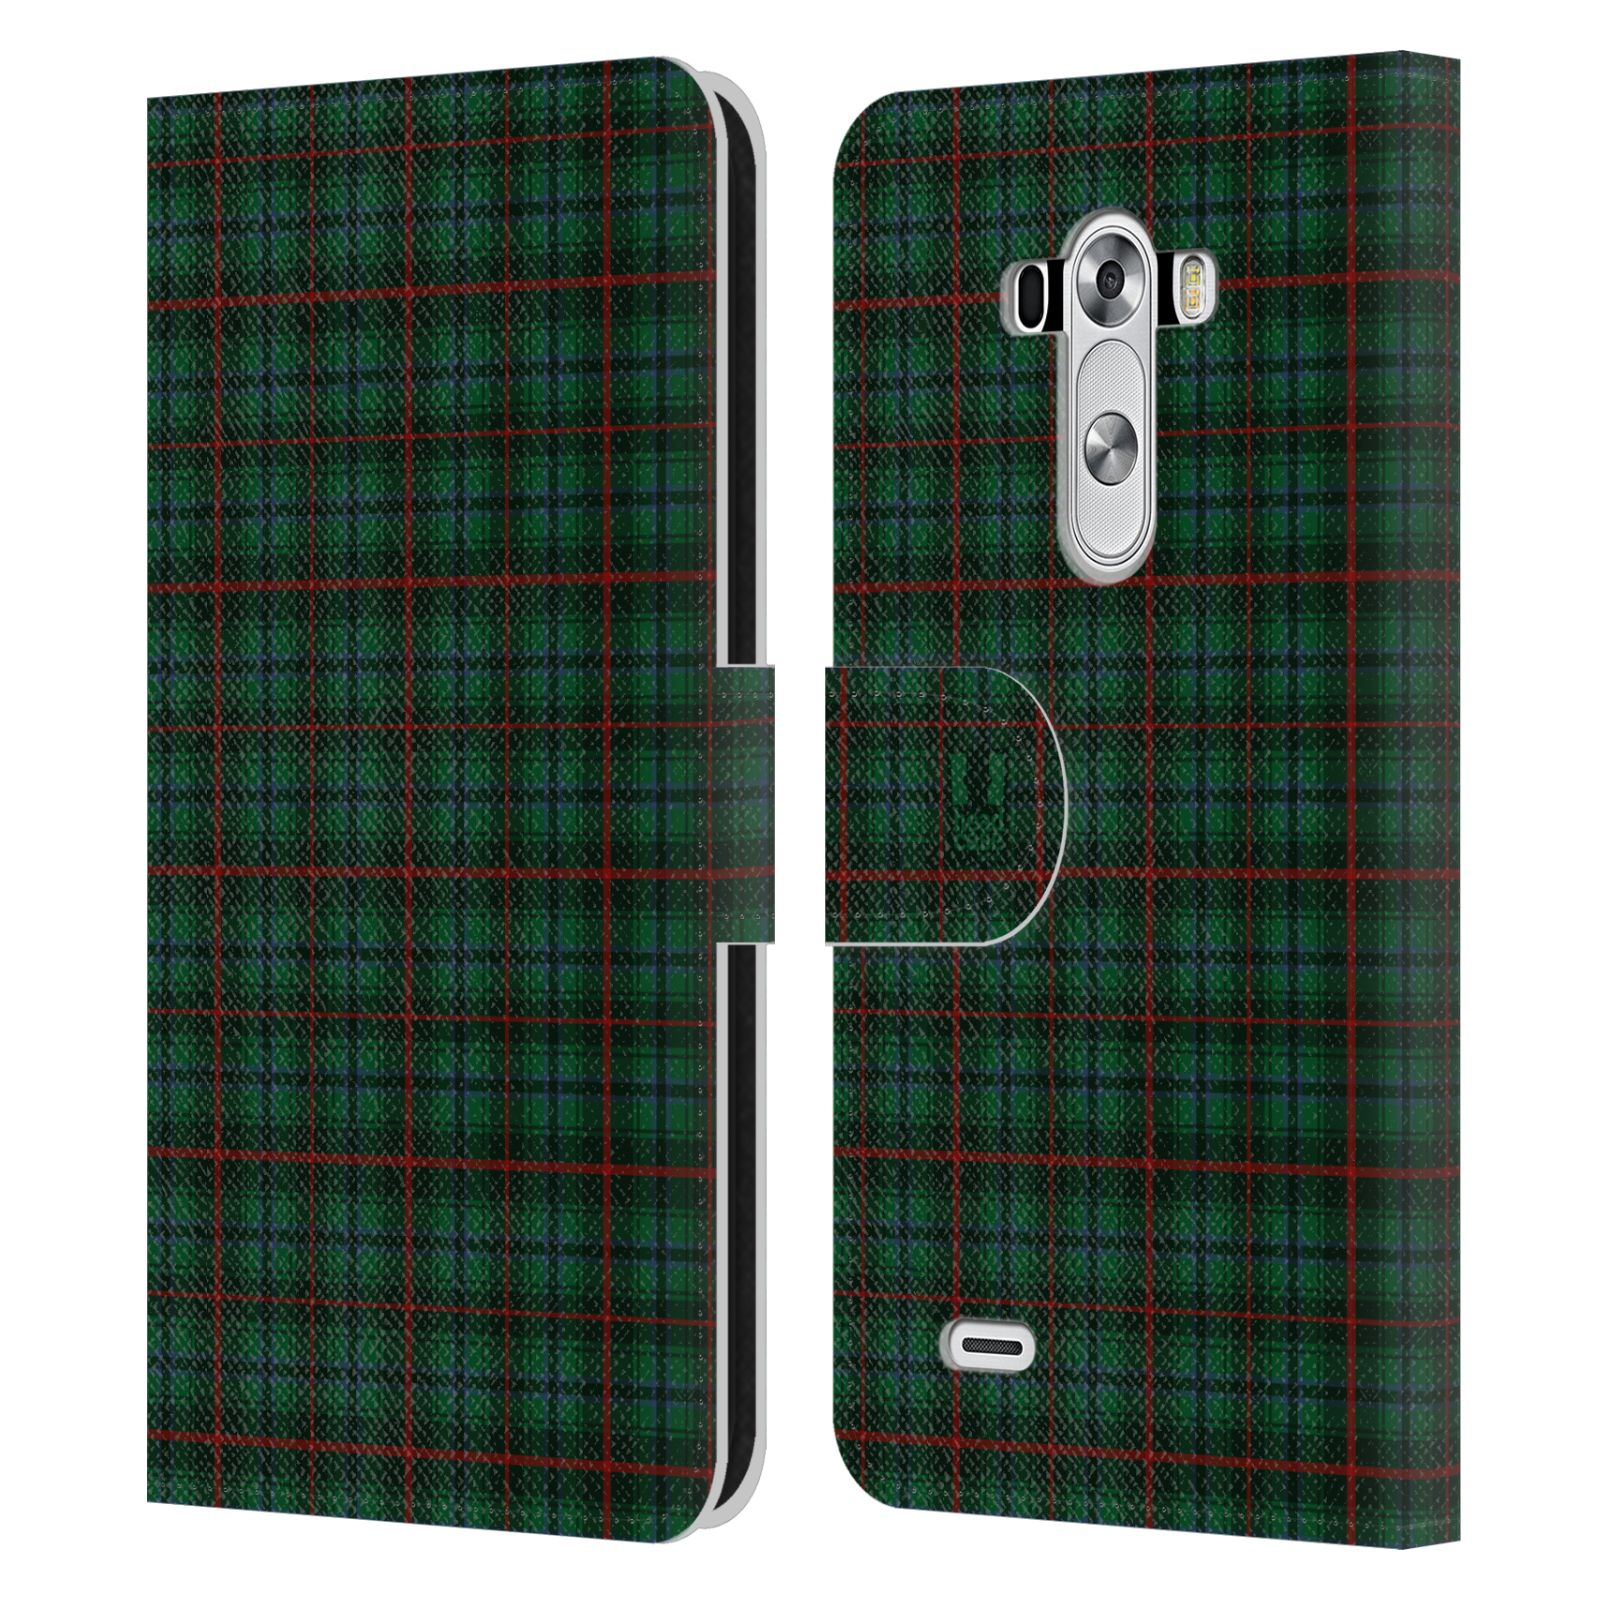 Head case designs plaid pattern leather book wallet case for Case design